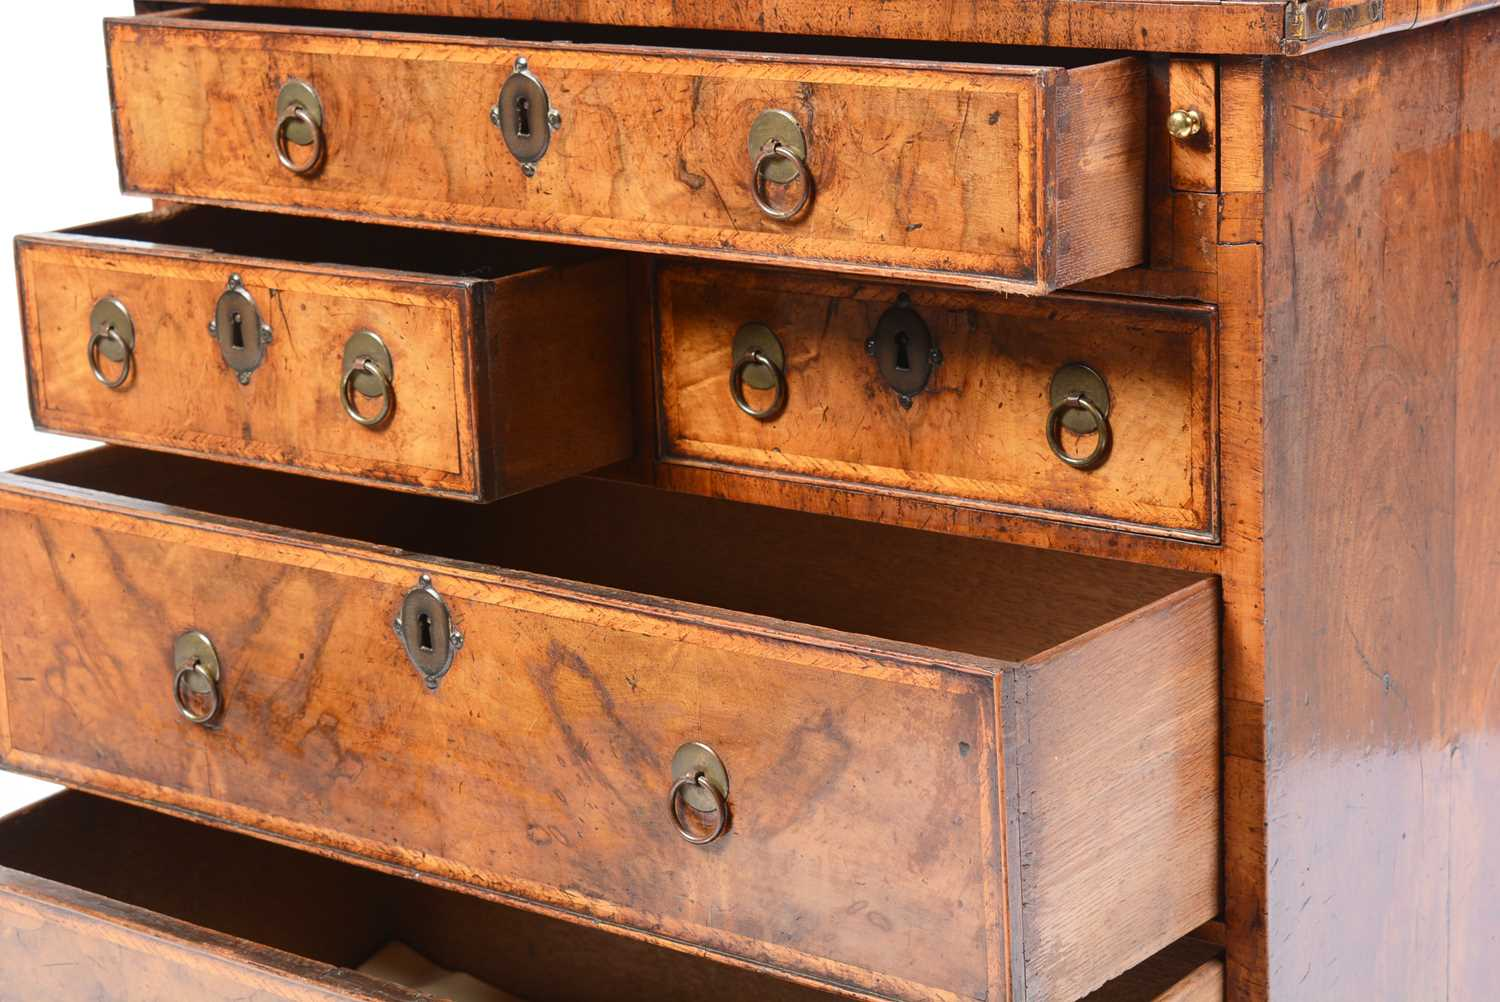 Early 18th Century walnut bachelors chest - Image 4 of 39